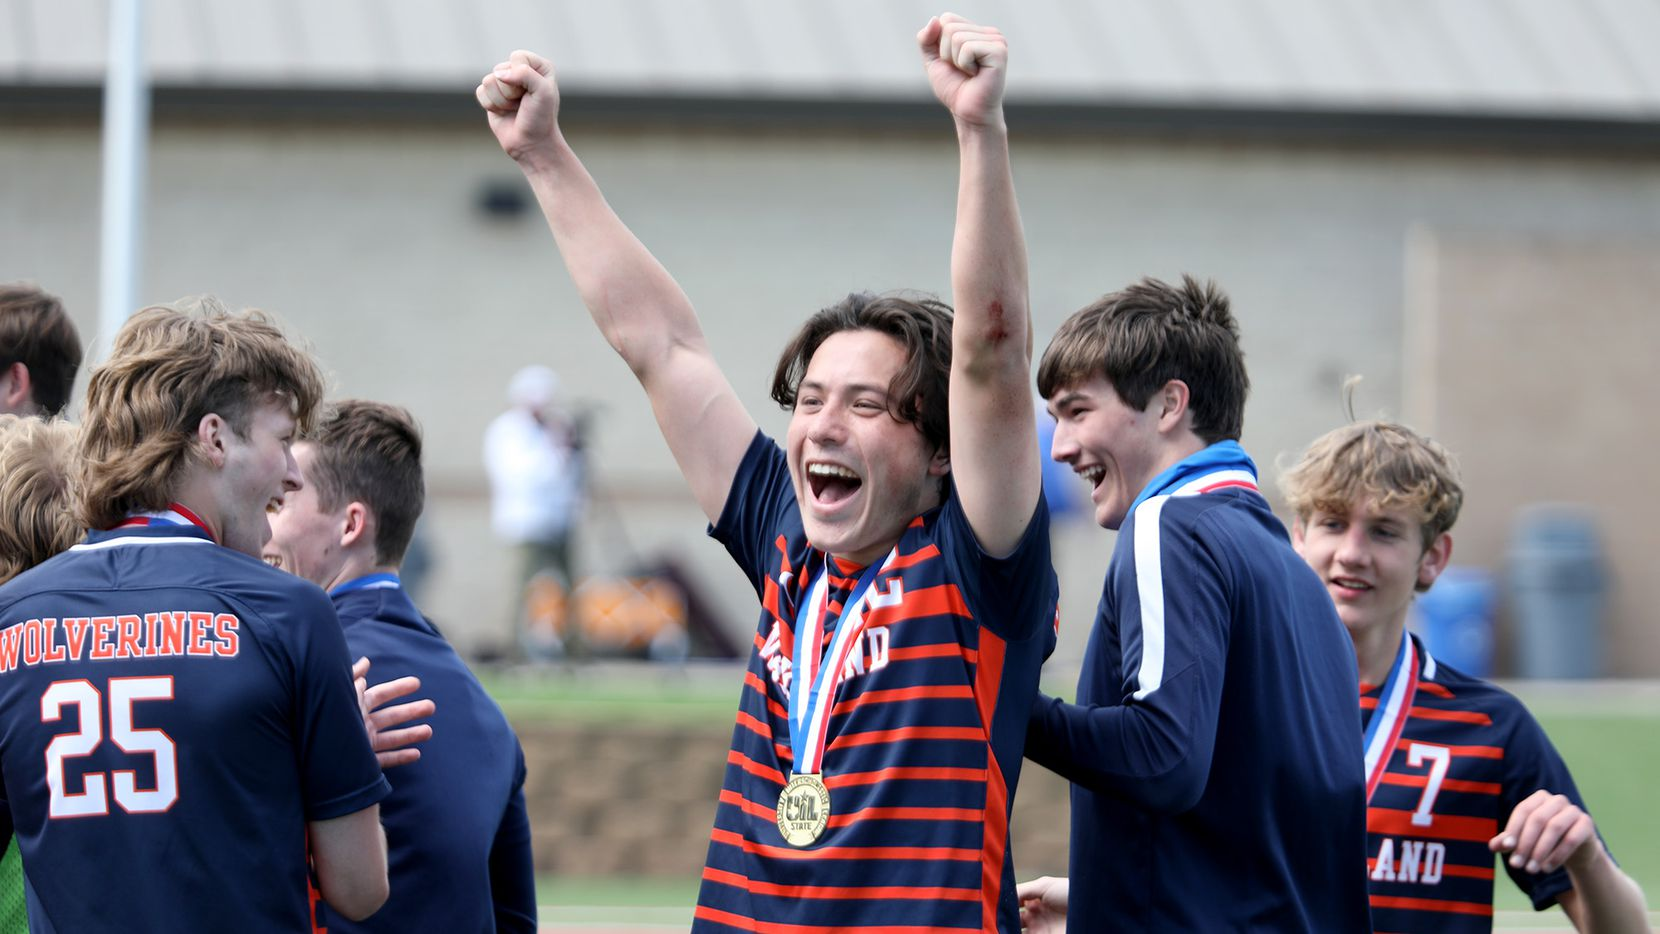 Frisco Wakeland's Brennan Bezdek (22) celebrates with teammates after   being named MVP in the UIL 5A boys State championship soccer game  against Humble Kingwood Park at Birkelbach Field on April 17, 2021 in Georgetown, Texas. Frisco Wakeland won 3-2.